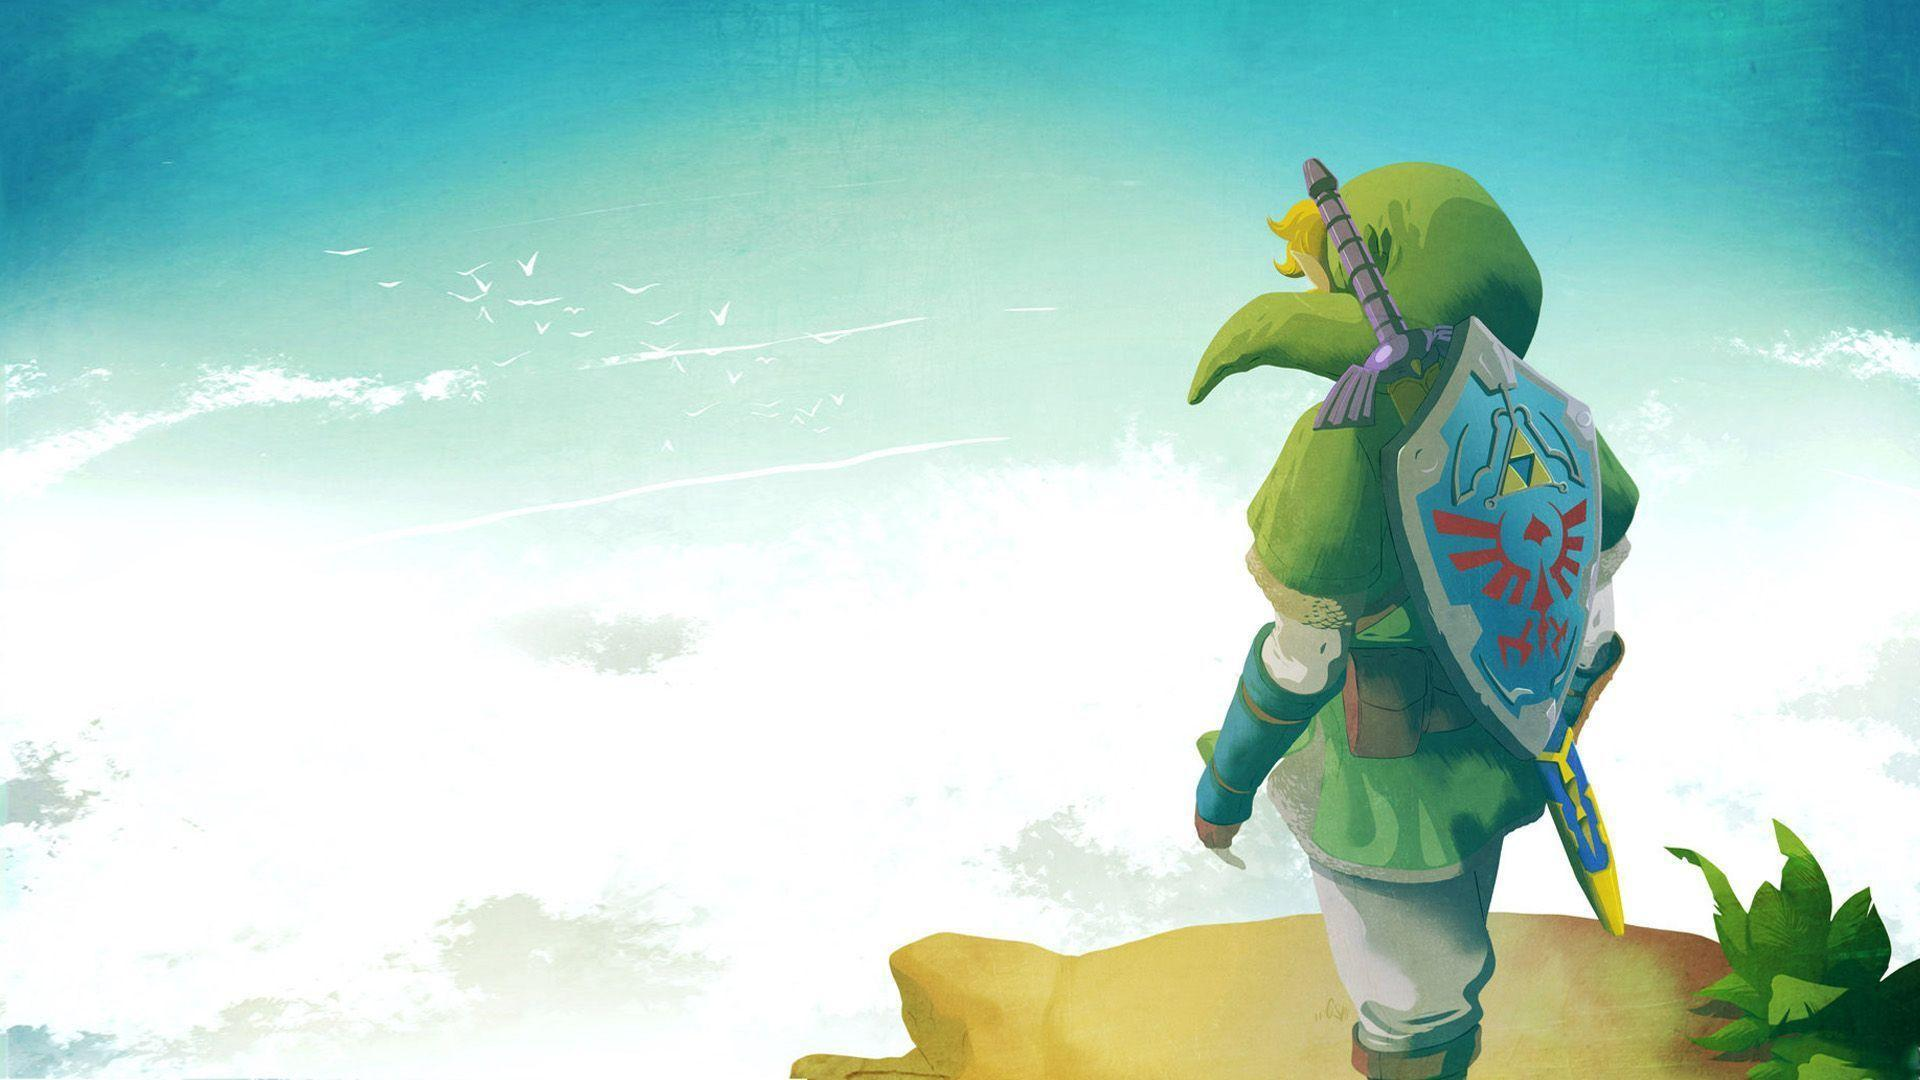 hd zelda wallpapers - photo #34